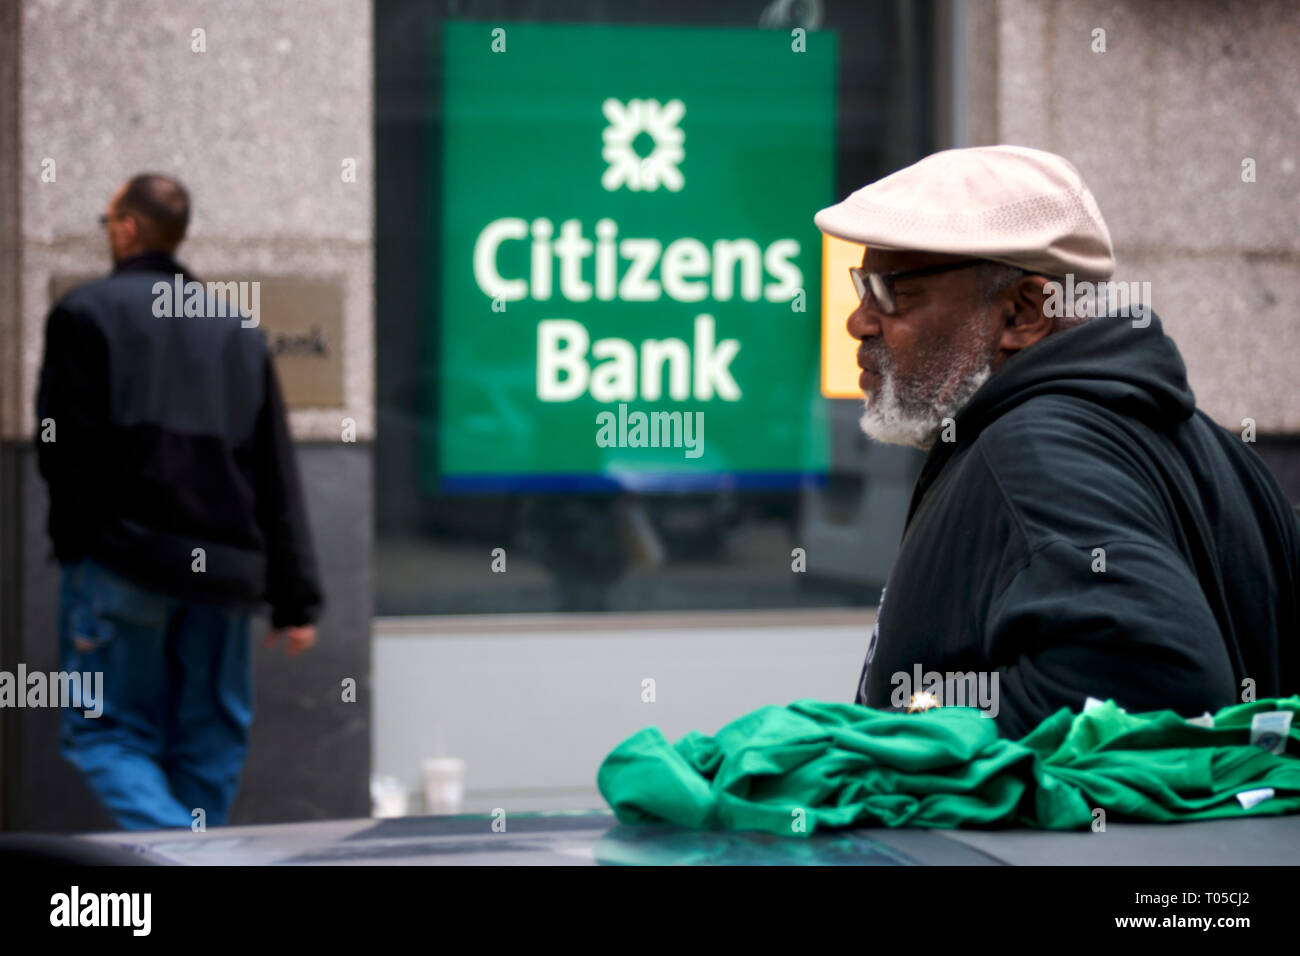 People walk past a branch of Citizens Band in Center City Philadelphia, PA on March 15, 2019. - Stock Image